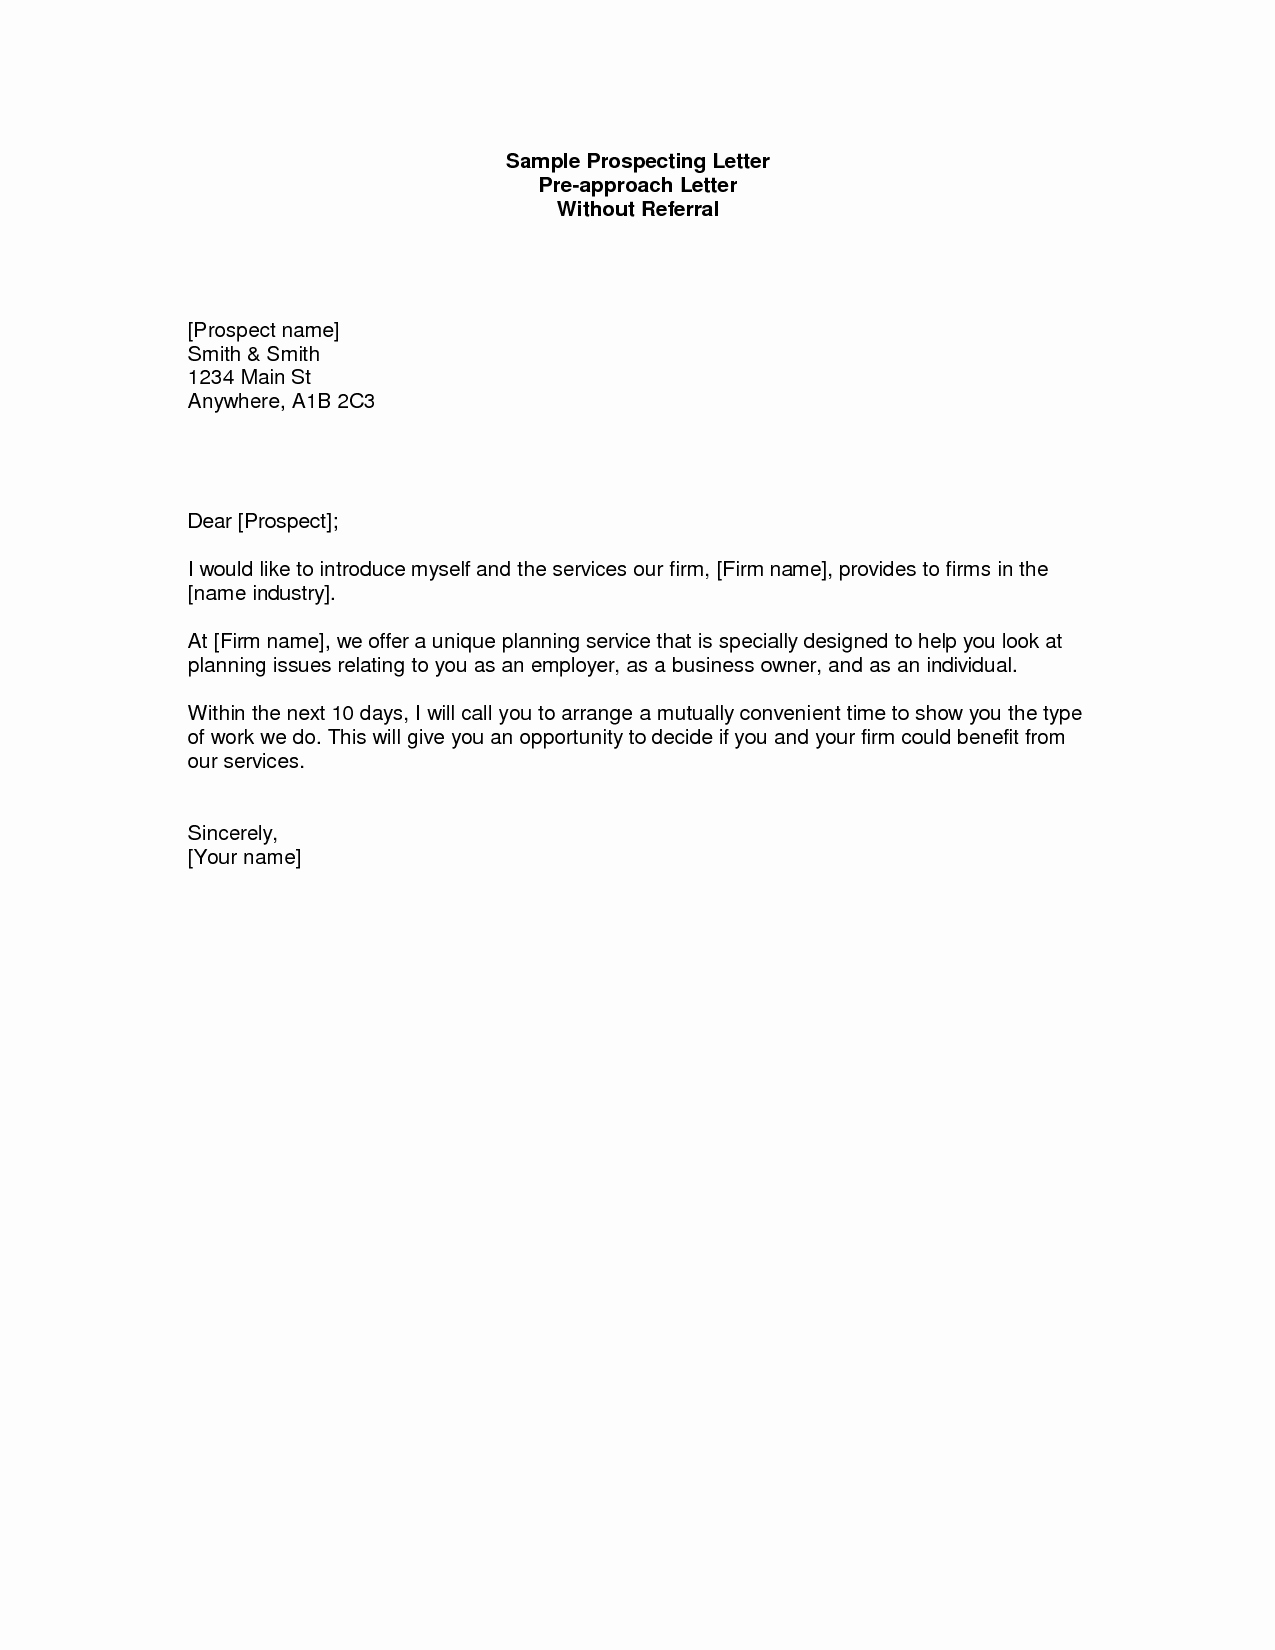 Commercial Real Estate Prospecting Letter Template - Real Estate Prospecting Letters Samples Beautiful Prospecting Letter